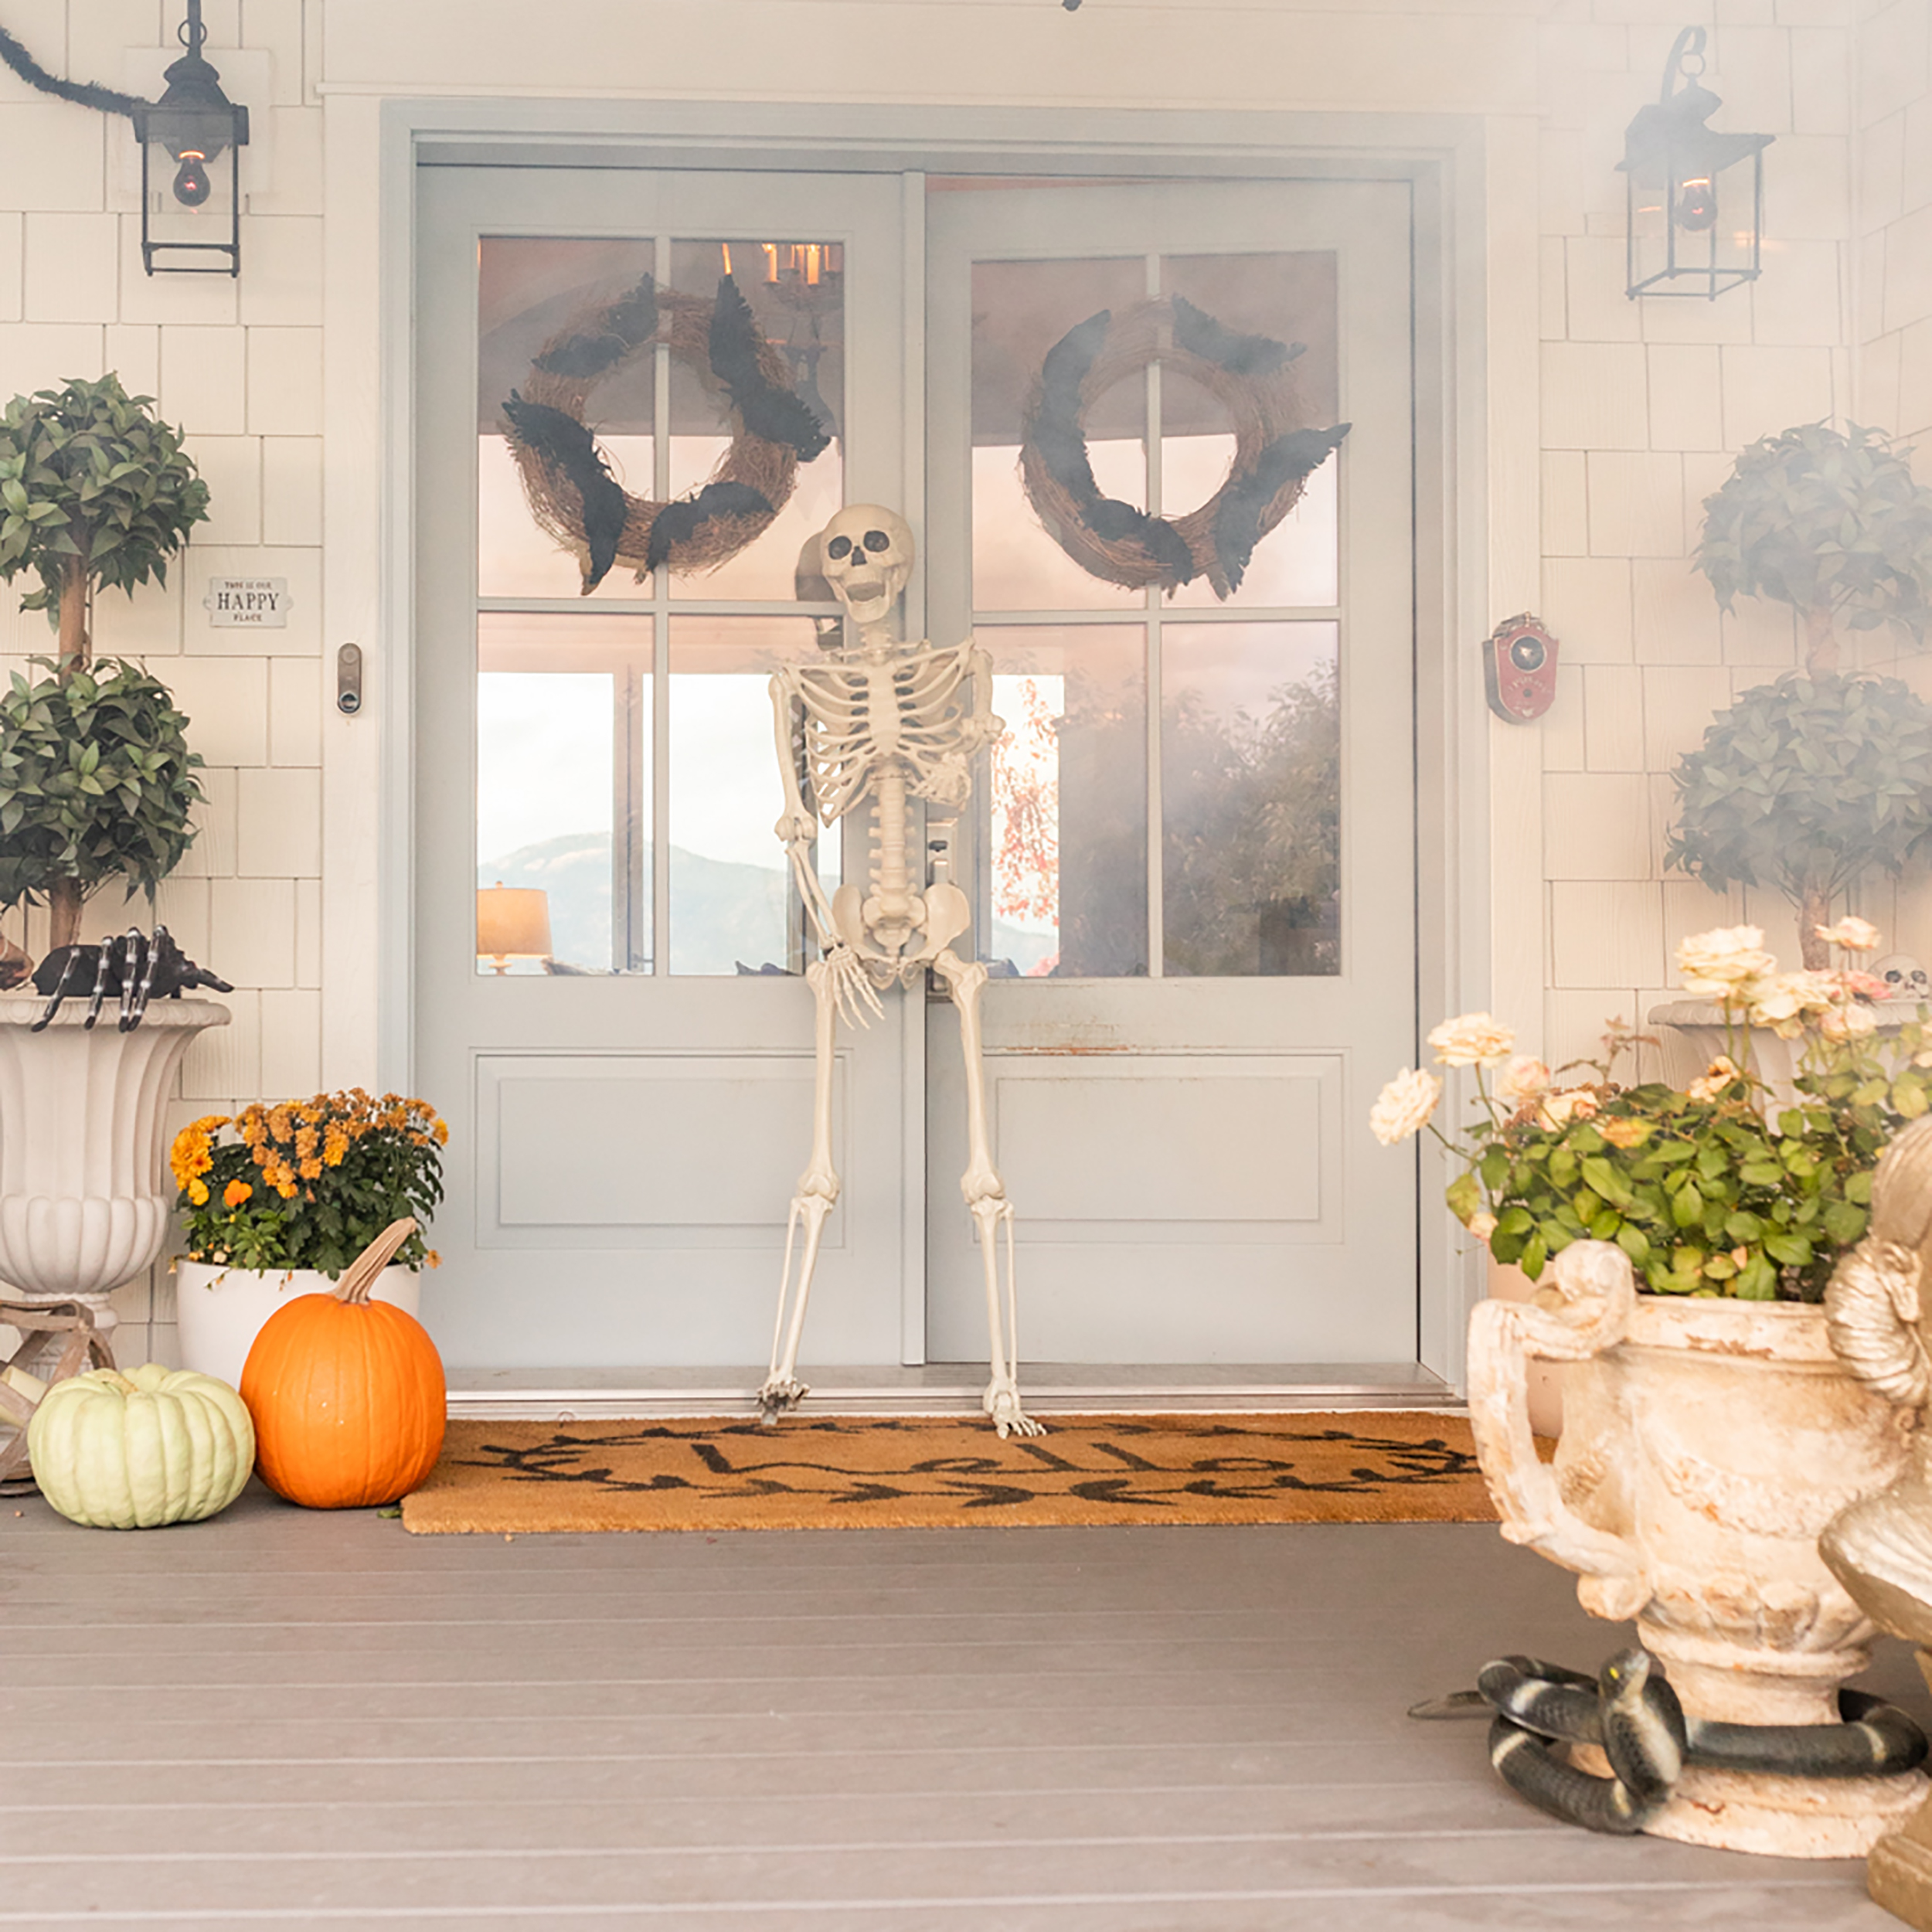 Halloween Decorations You'll Want to Keep Up Year-Round